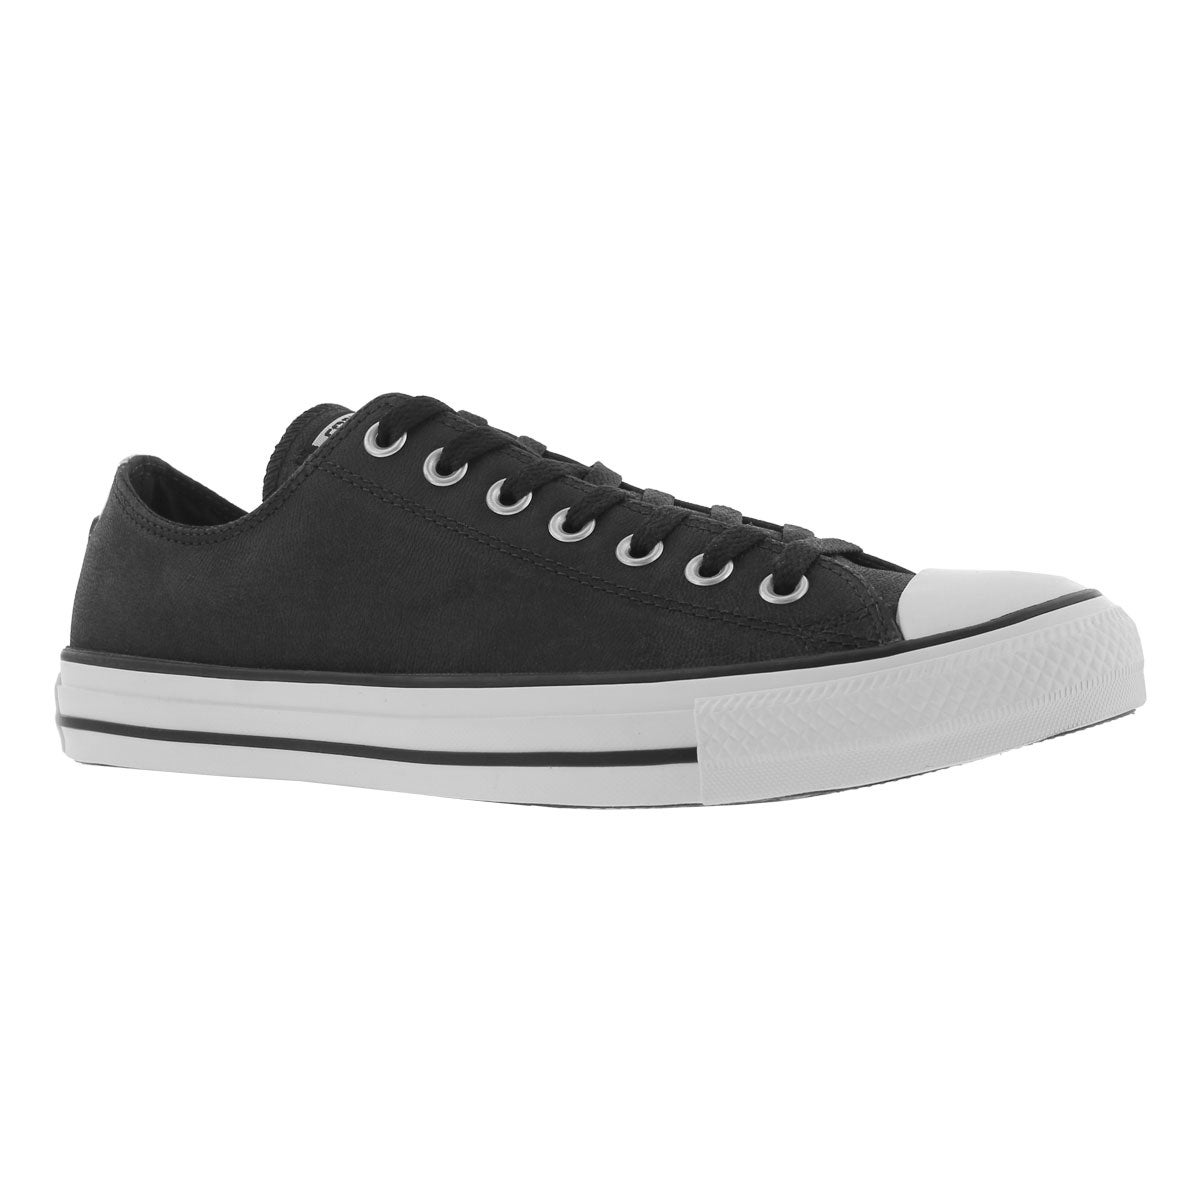 Men's CT ALL STAR LEATHER OX black sneakers